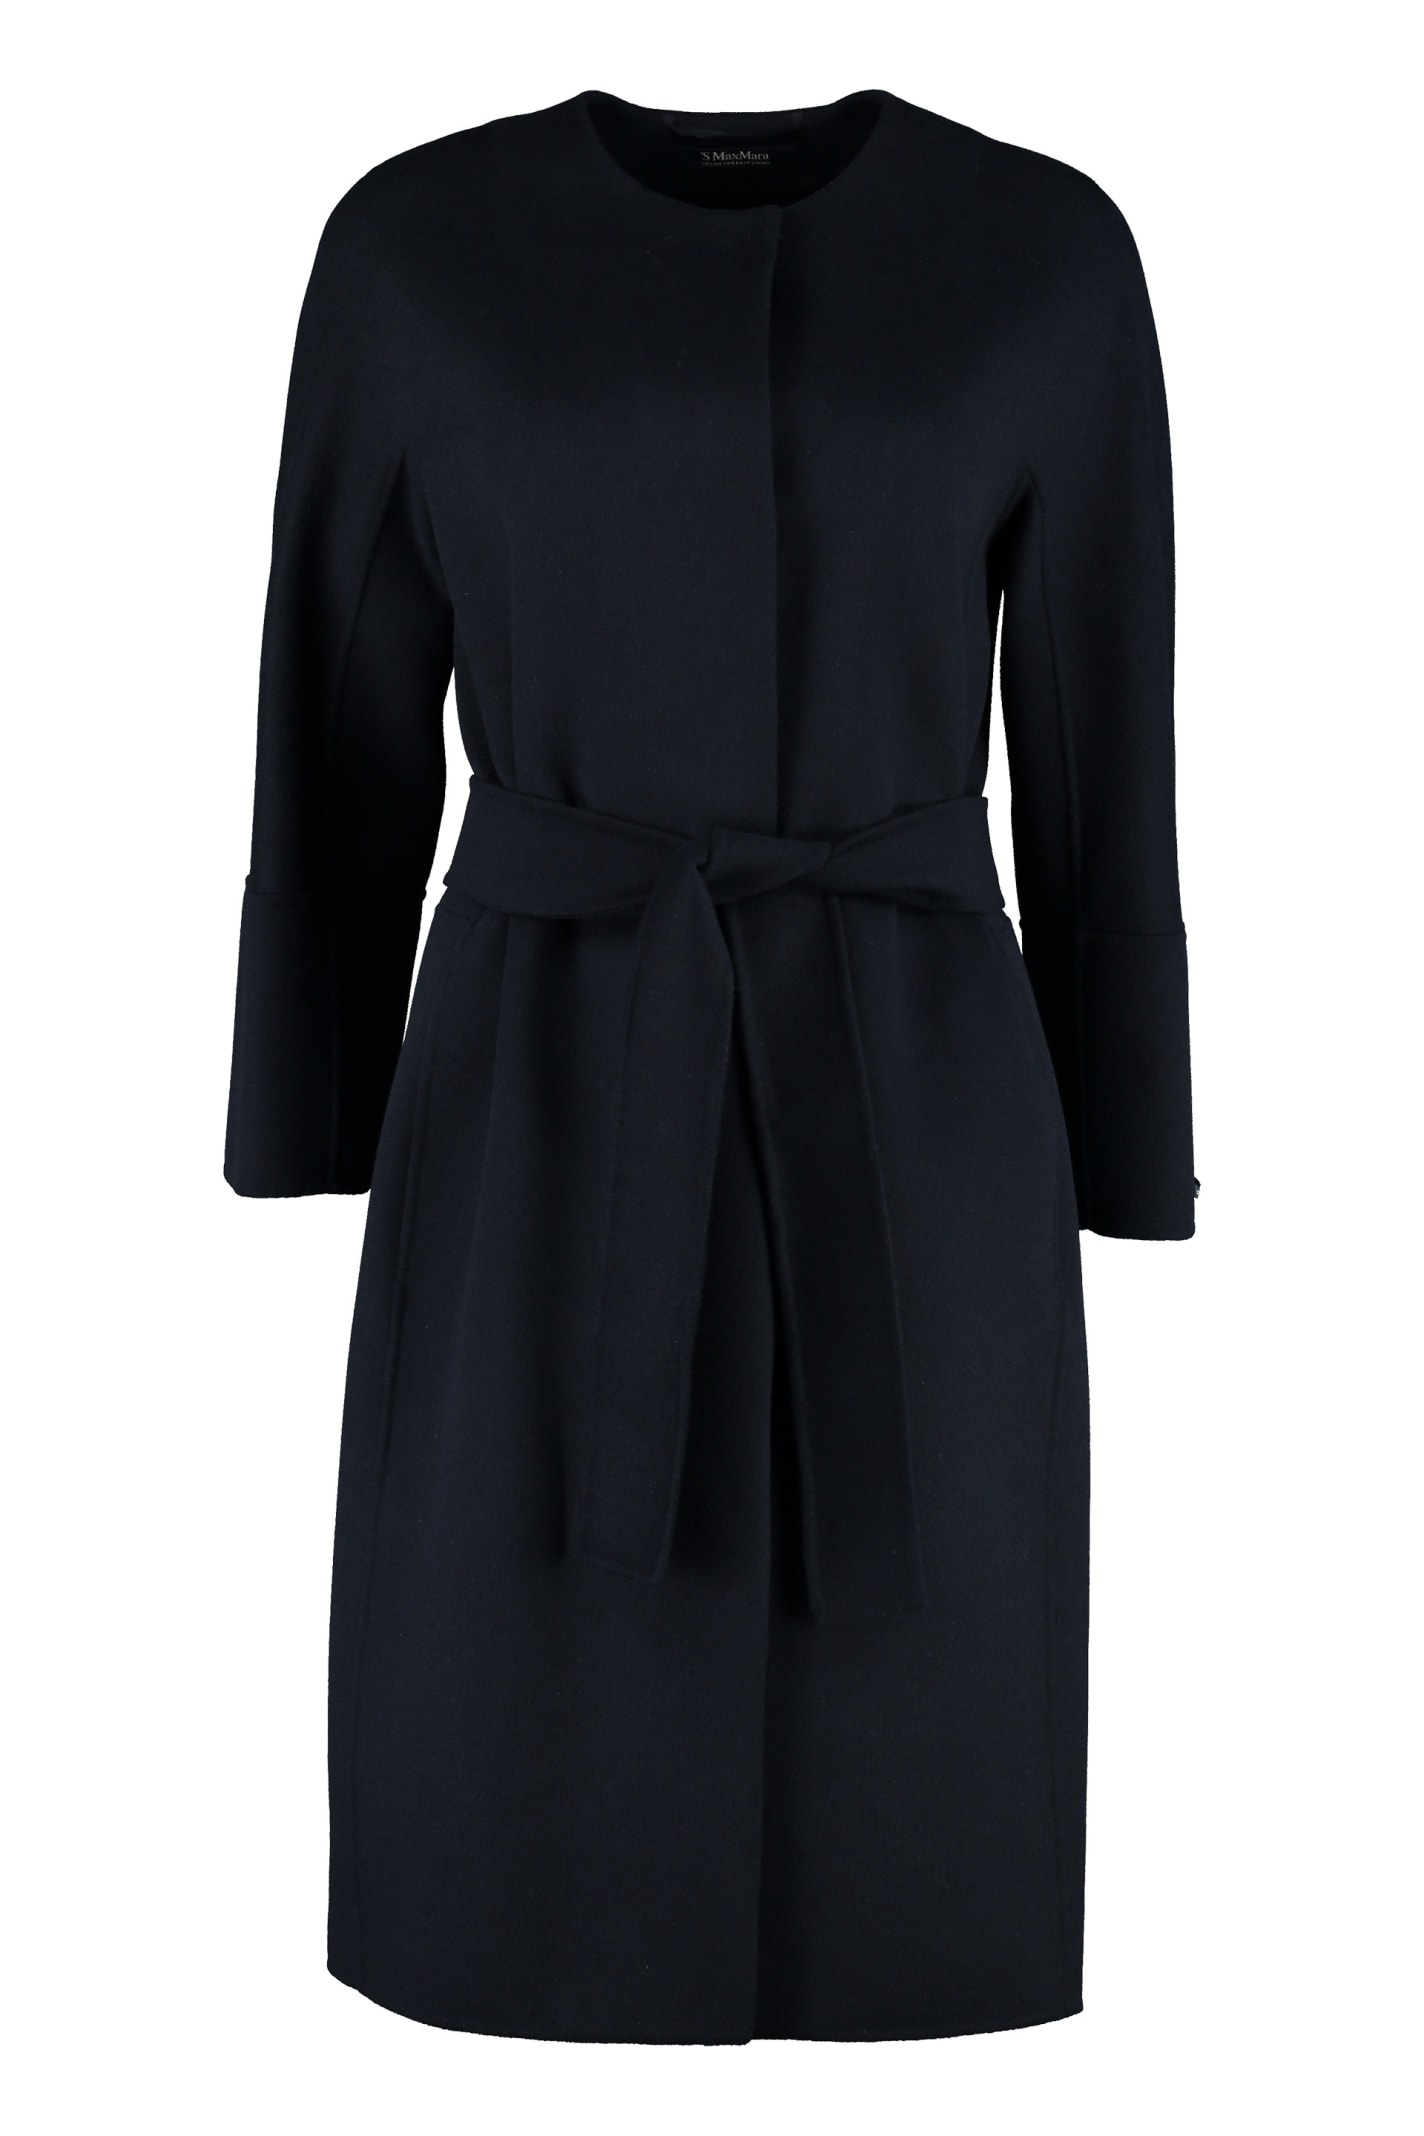 S Max Mara Here is The Cube Beirut Belted Long Coat